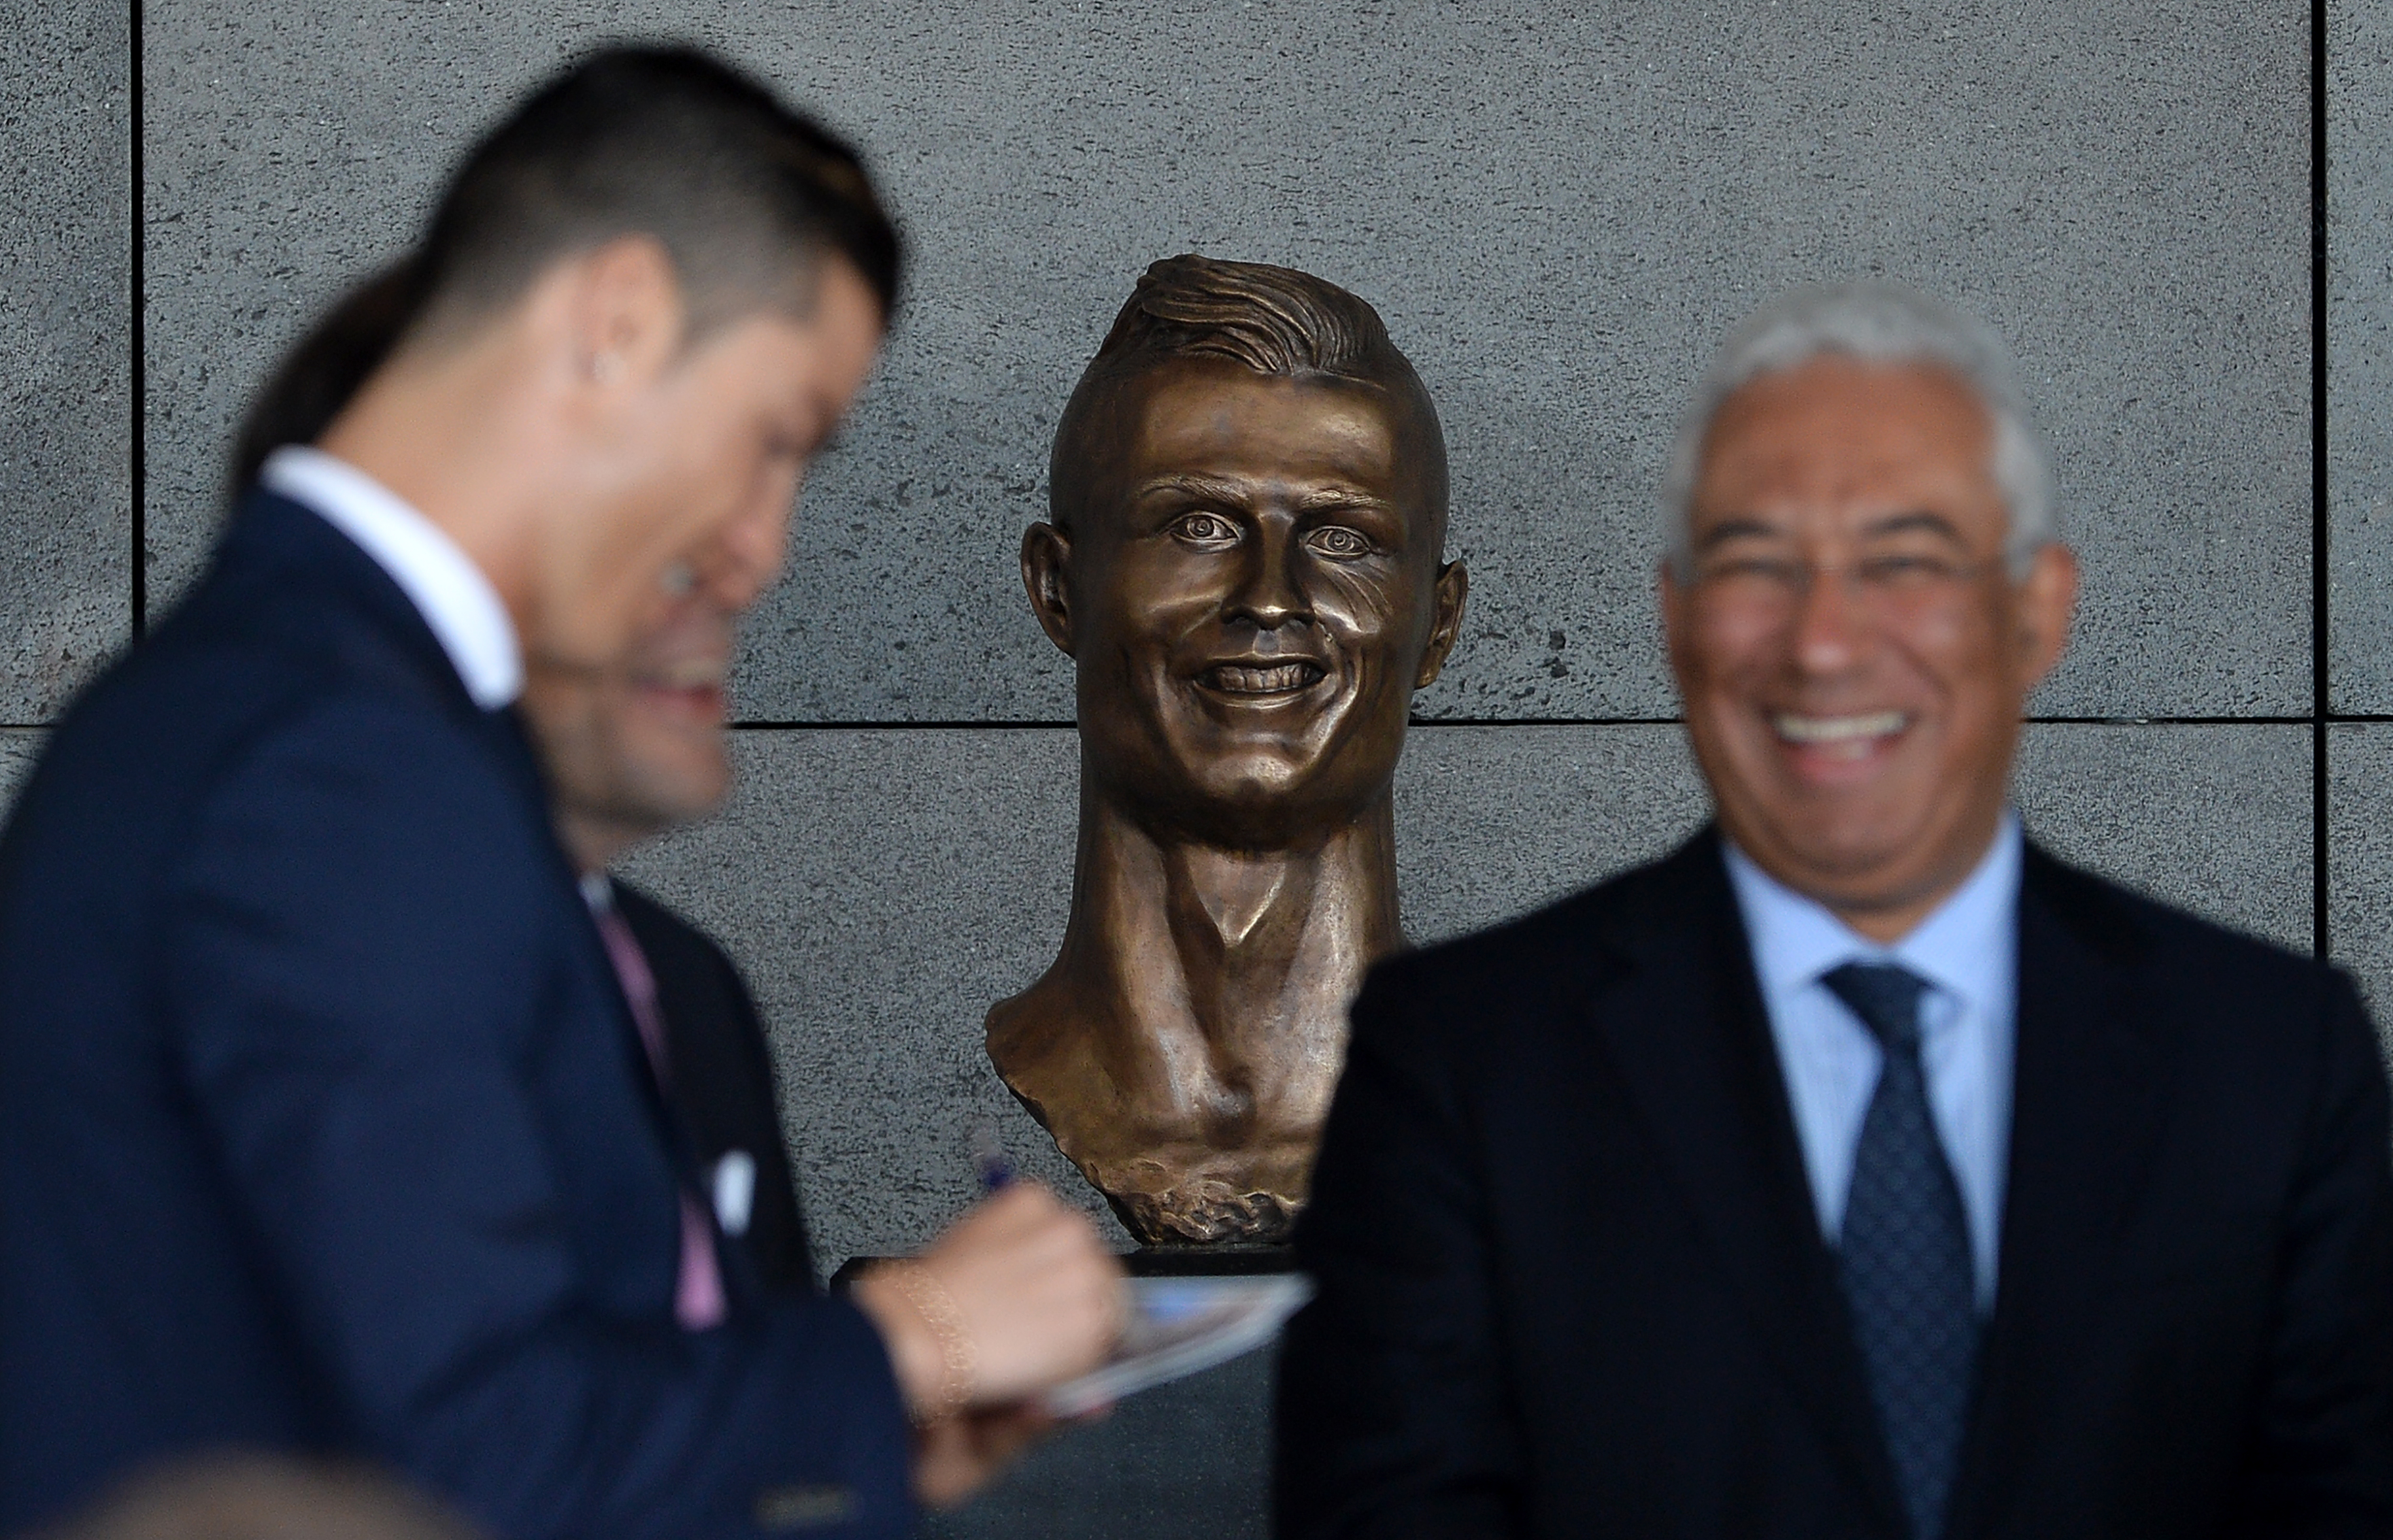 Cristiano Ronaldo gets Madeira airport named in his honour along with 'horrifying' bronze bust of himself.